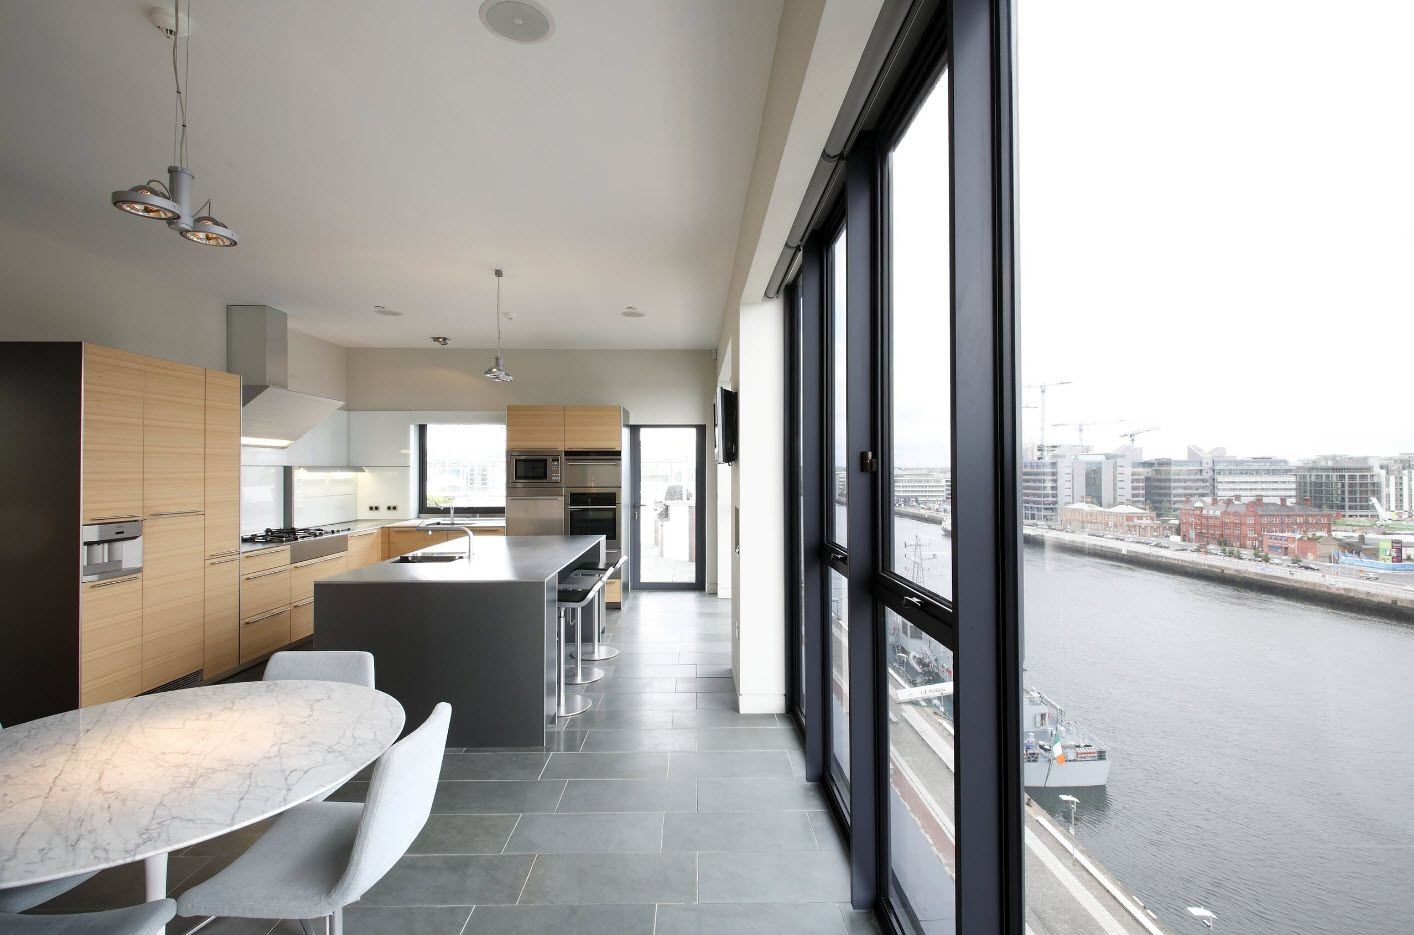 Urban apartment design with large window oanes and gray kitchen island as a accentual pedestal in the center